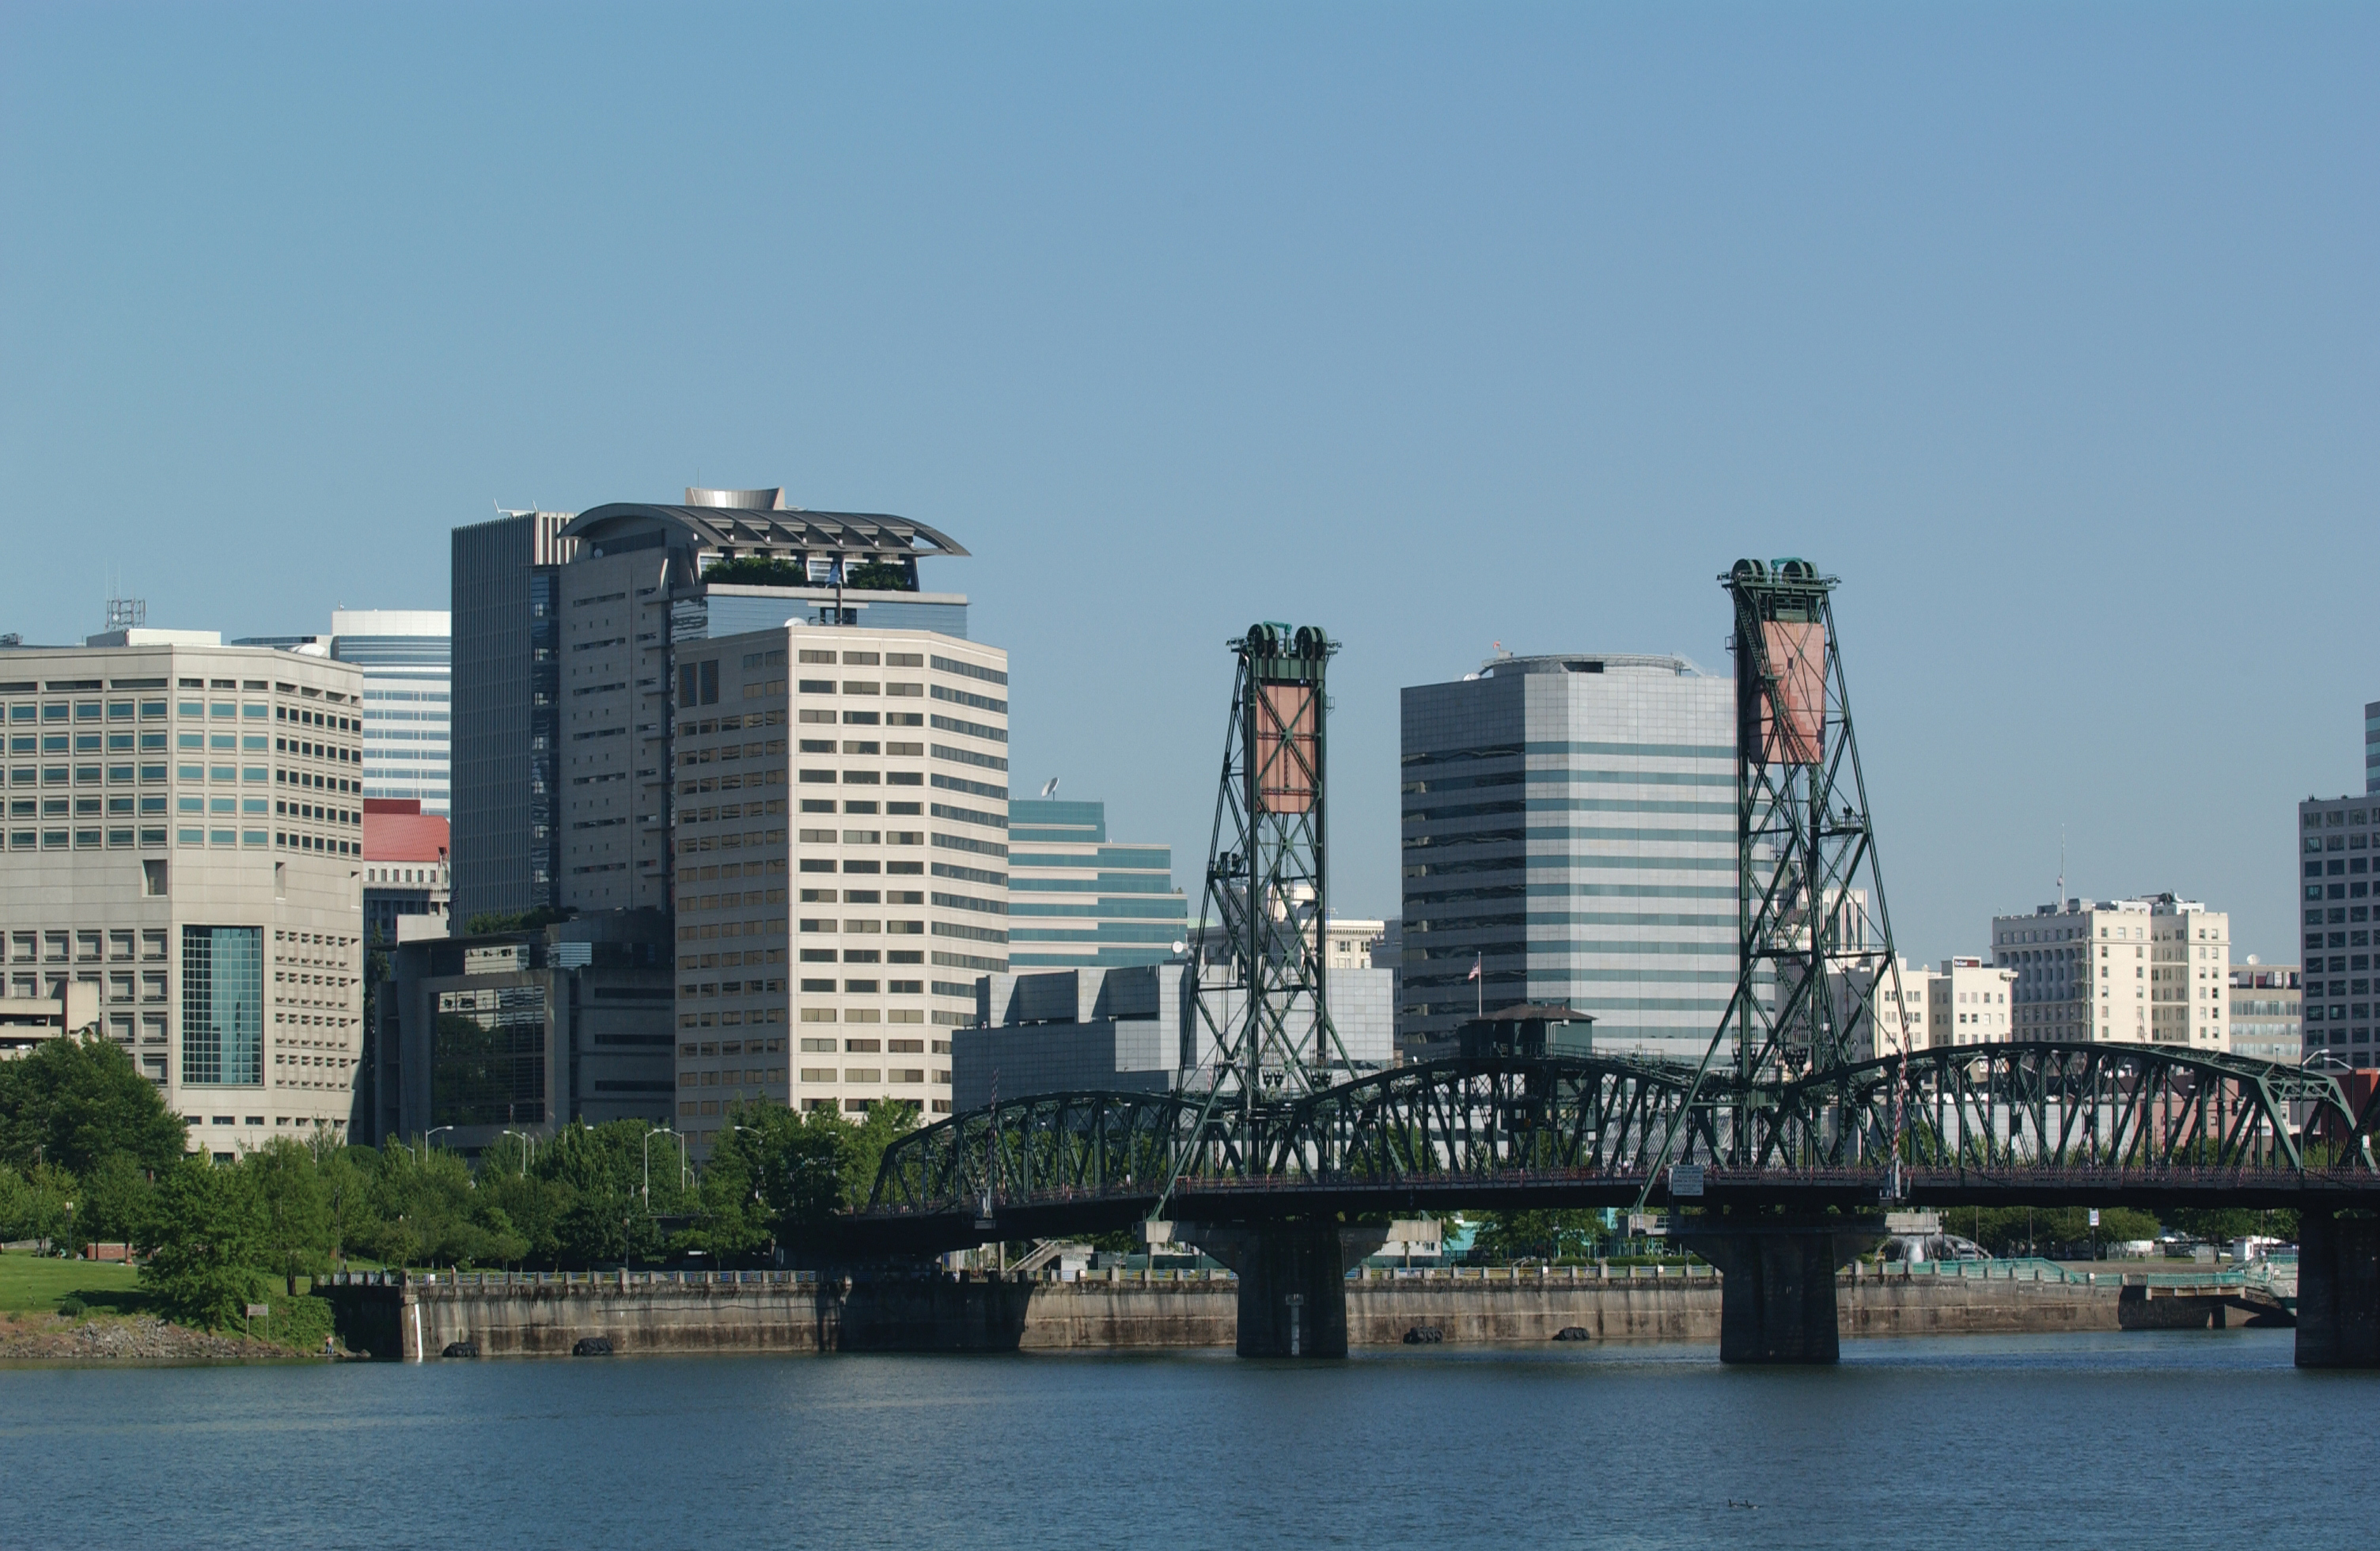 Portland skyline with Hawthorne Bridge and Willamette River in foreground